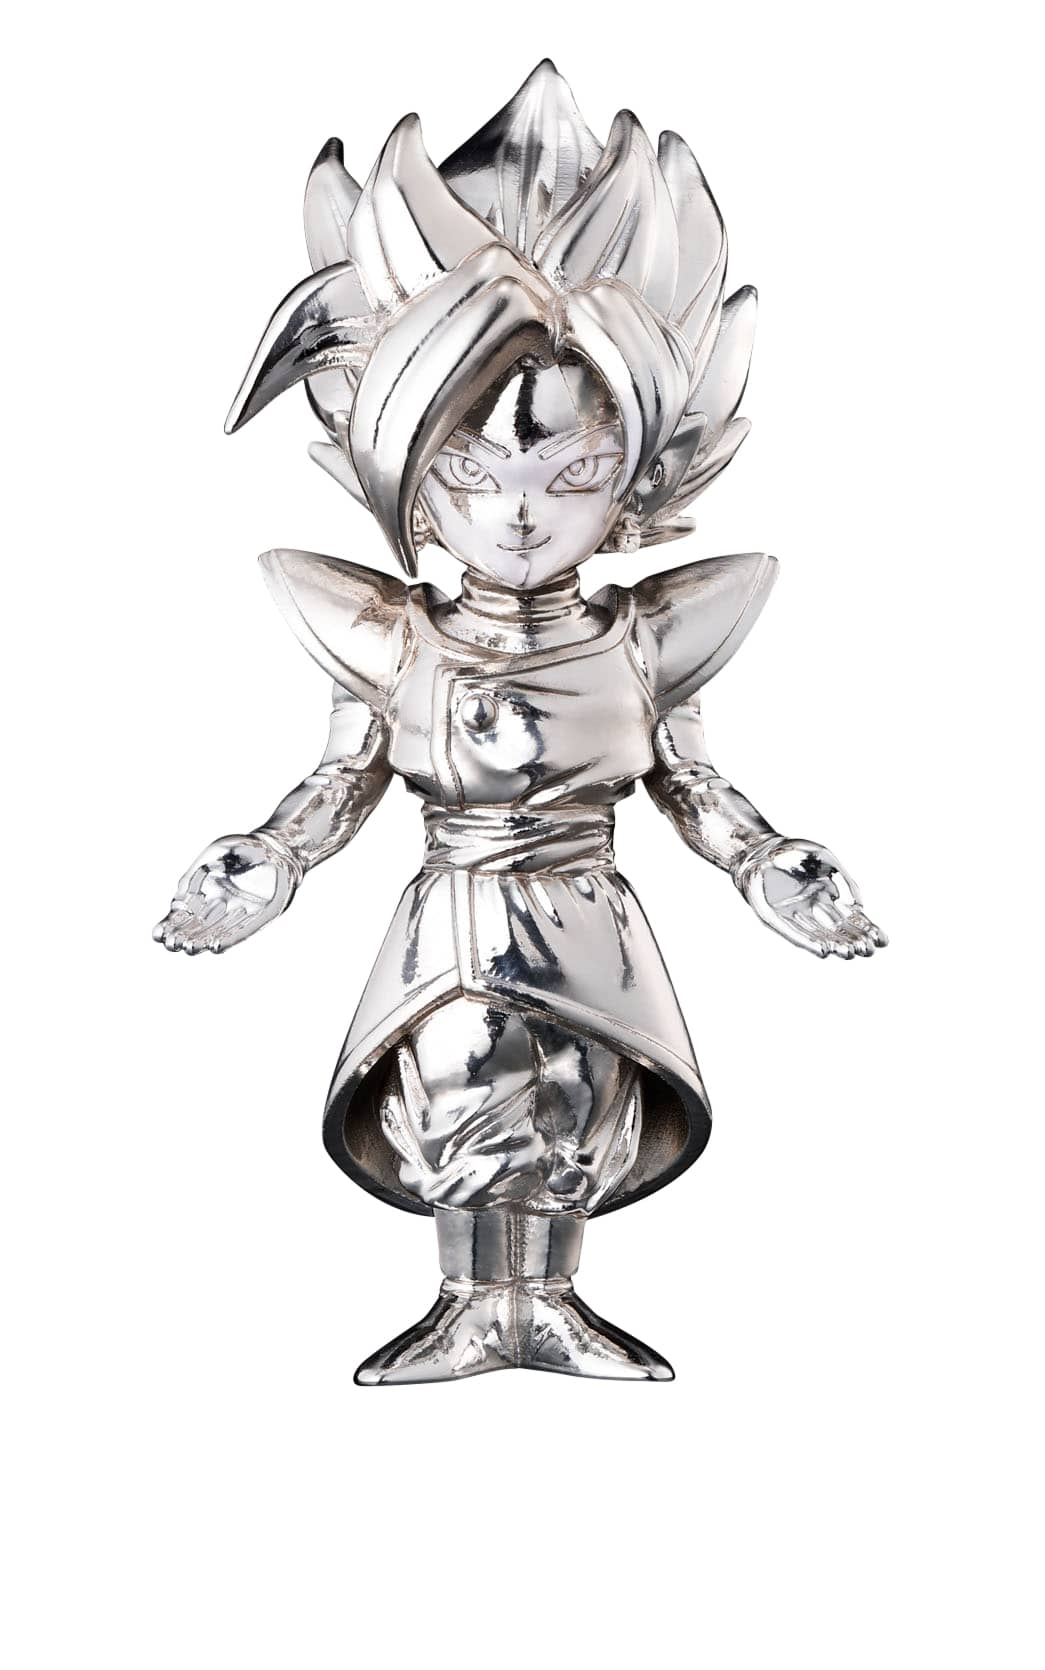 ZAMASU (POTARA) DZ 15 FIGURA 7 CM DRAGON BALL SUPER ABSOLUTE CHOGOKIN